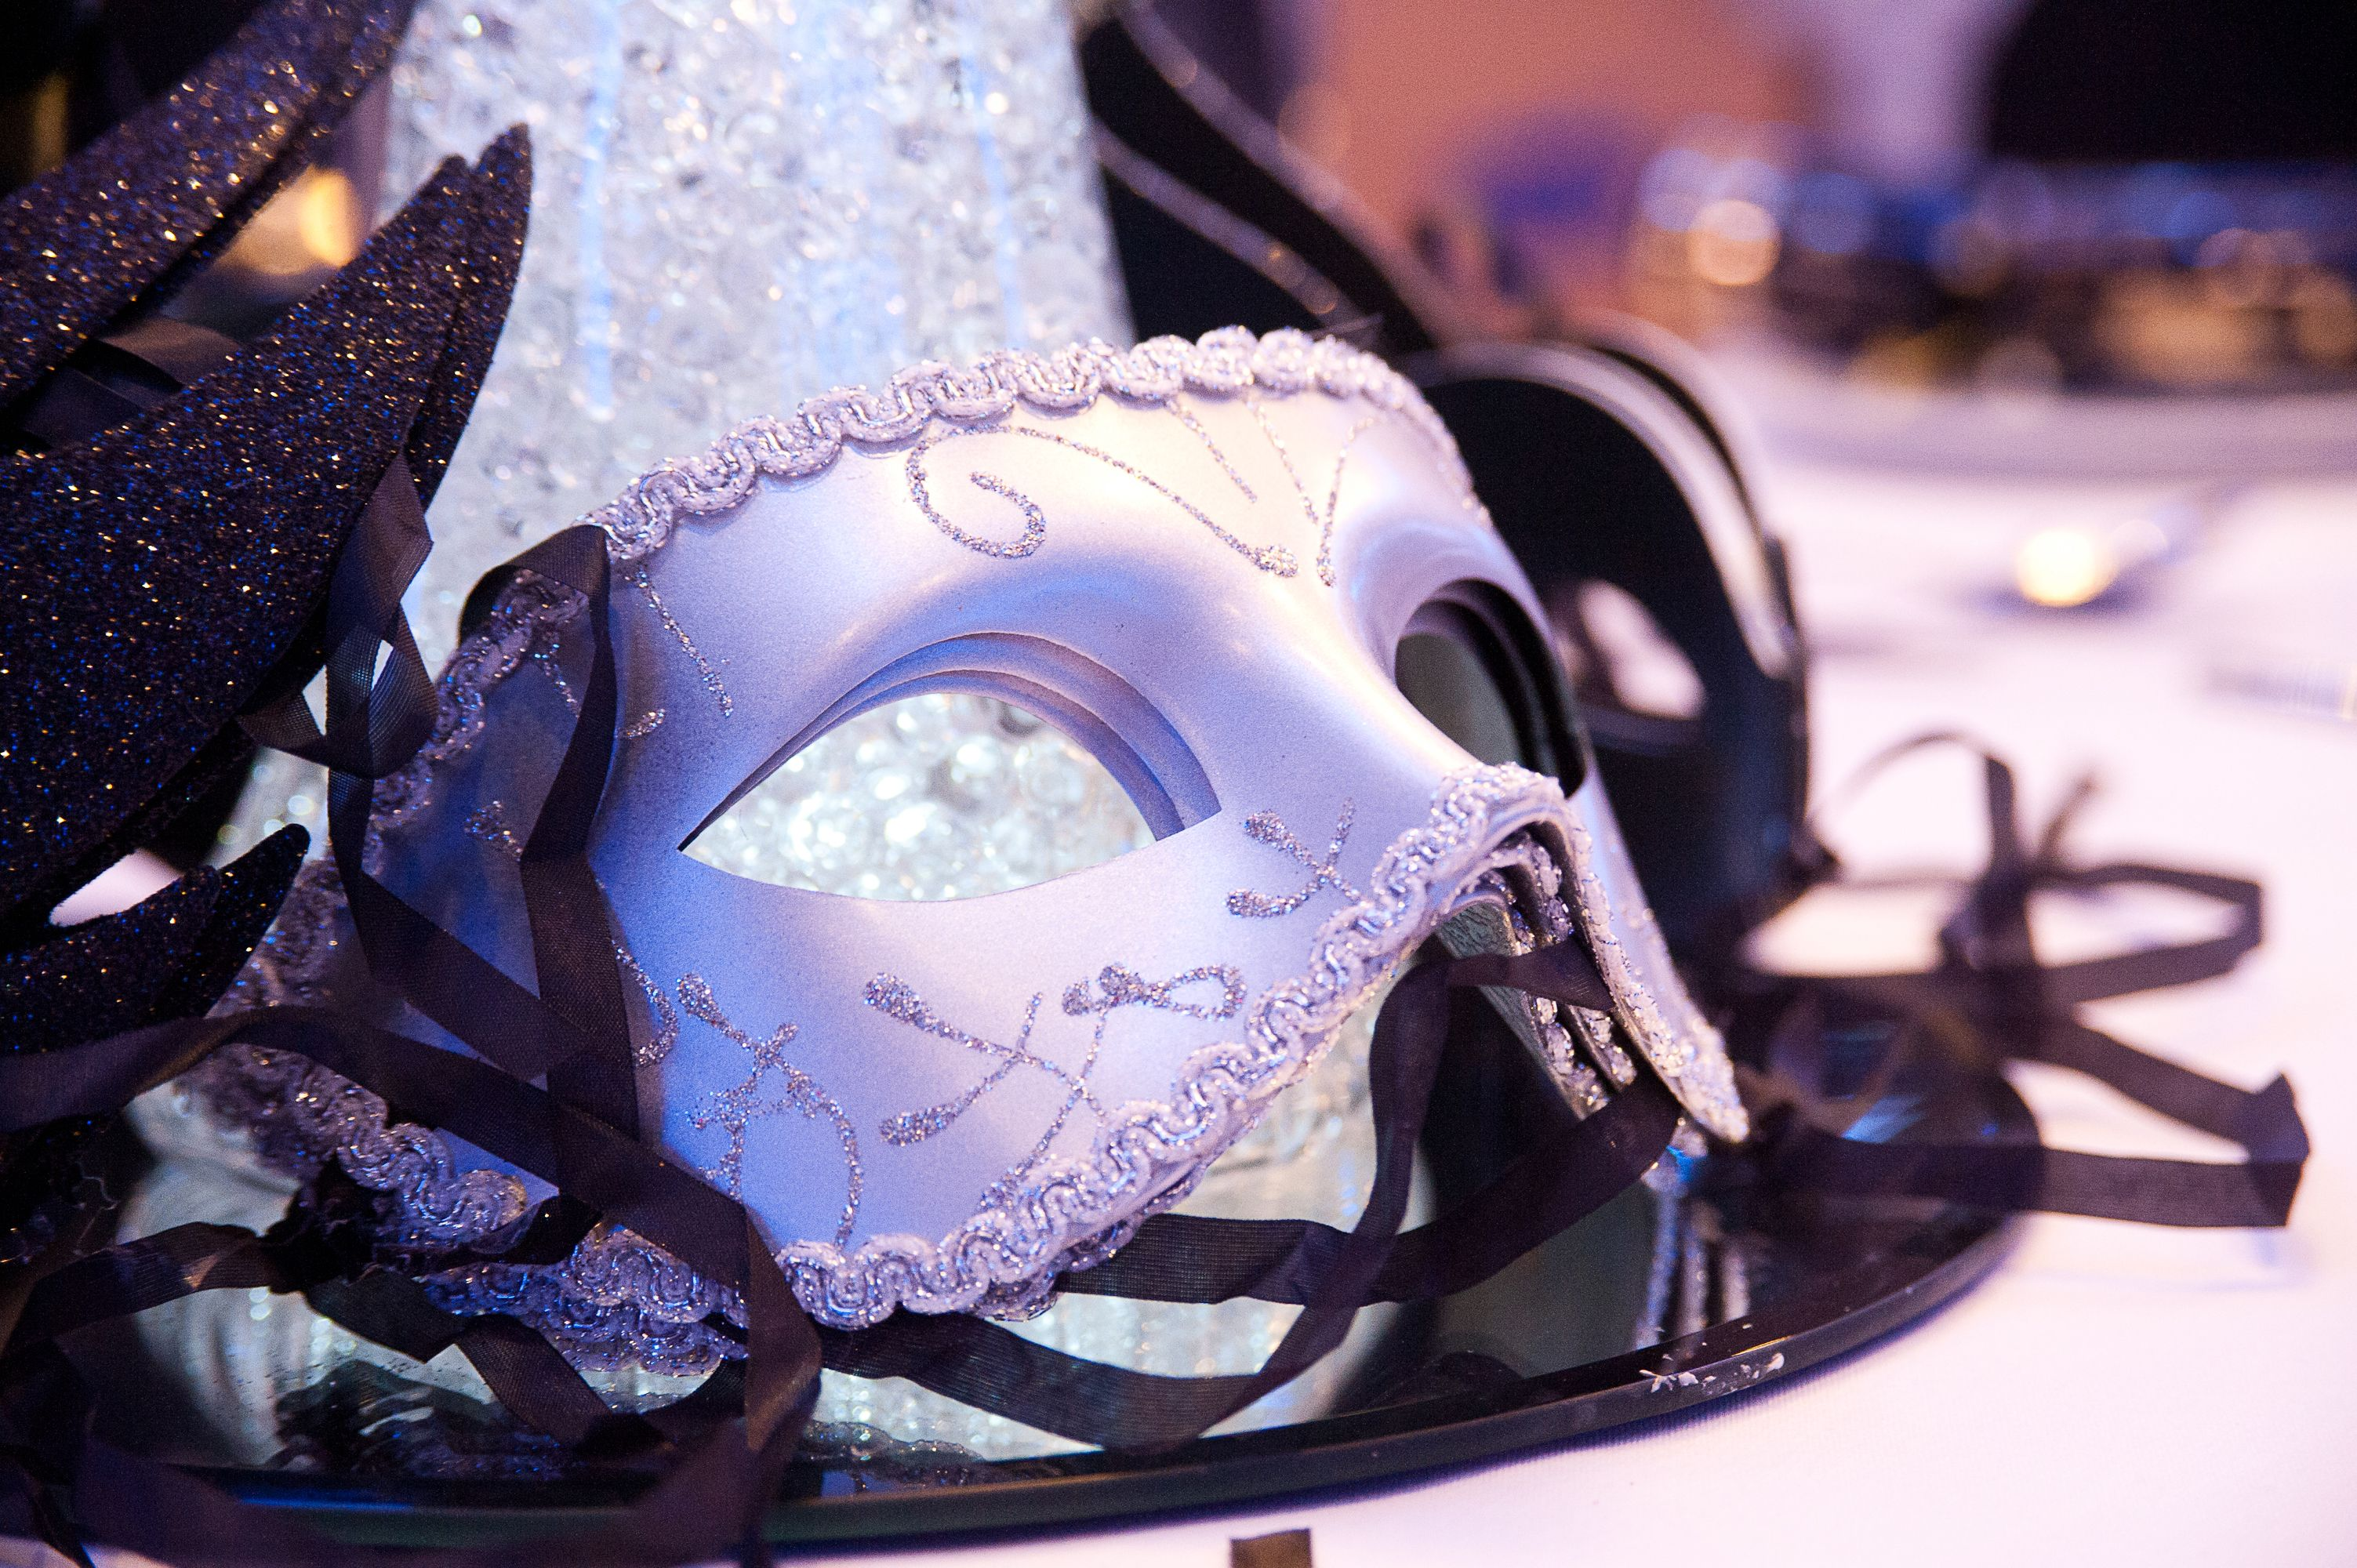 Black And White Christmas Party Ideas Part - 42: Black U0026 White Masquerade Ball At The Auction House. Photo By  Www.abraxasphoto. Masquerade Party ThemesMasquerade BallWhite DiamondsParty  IdeasChristmas ...